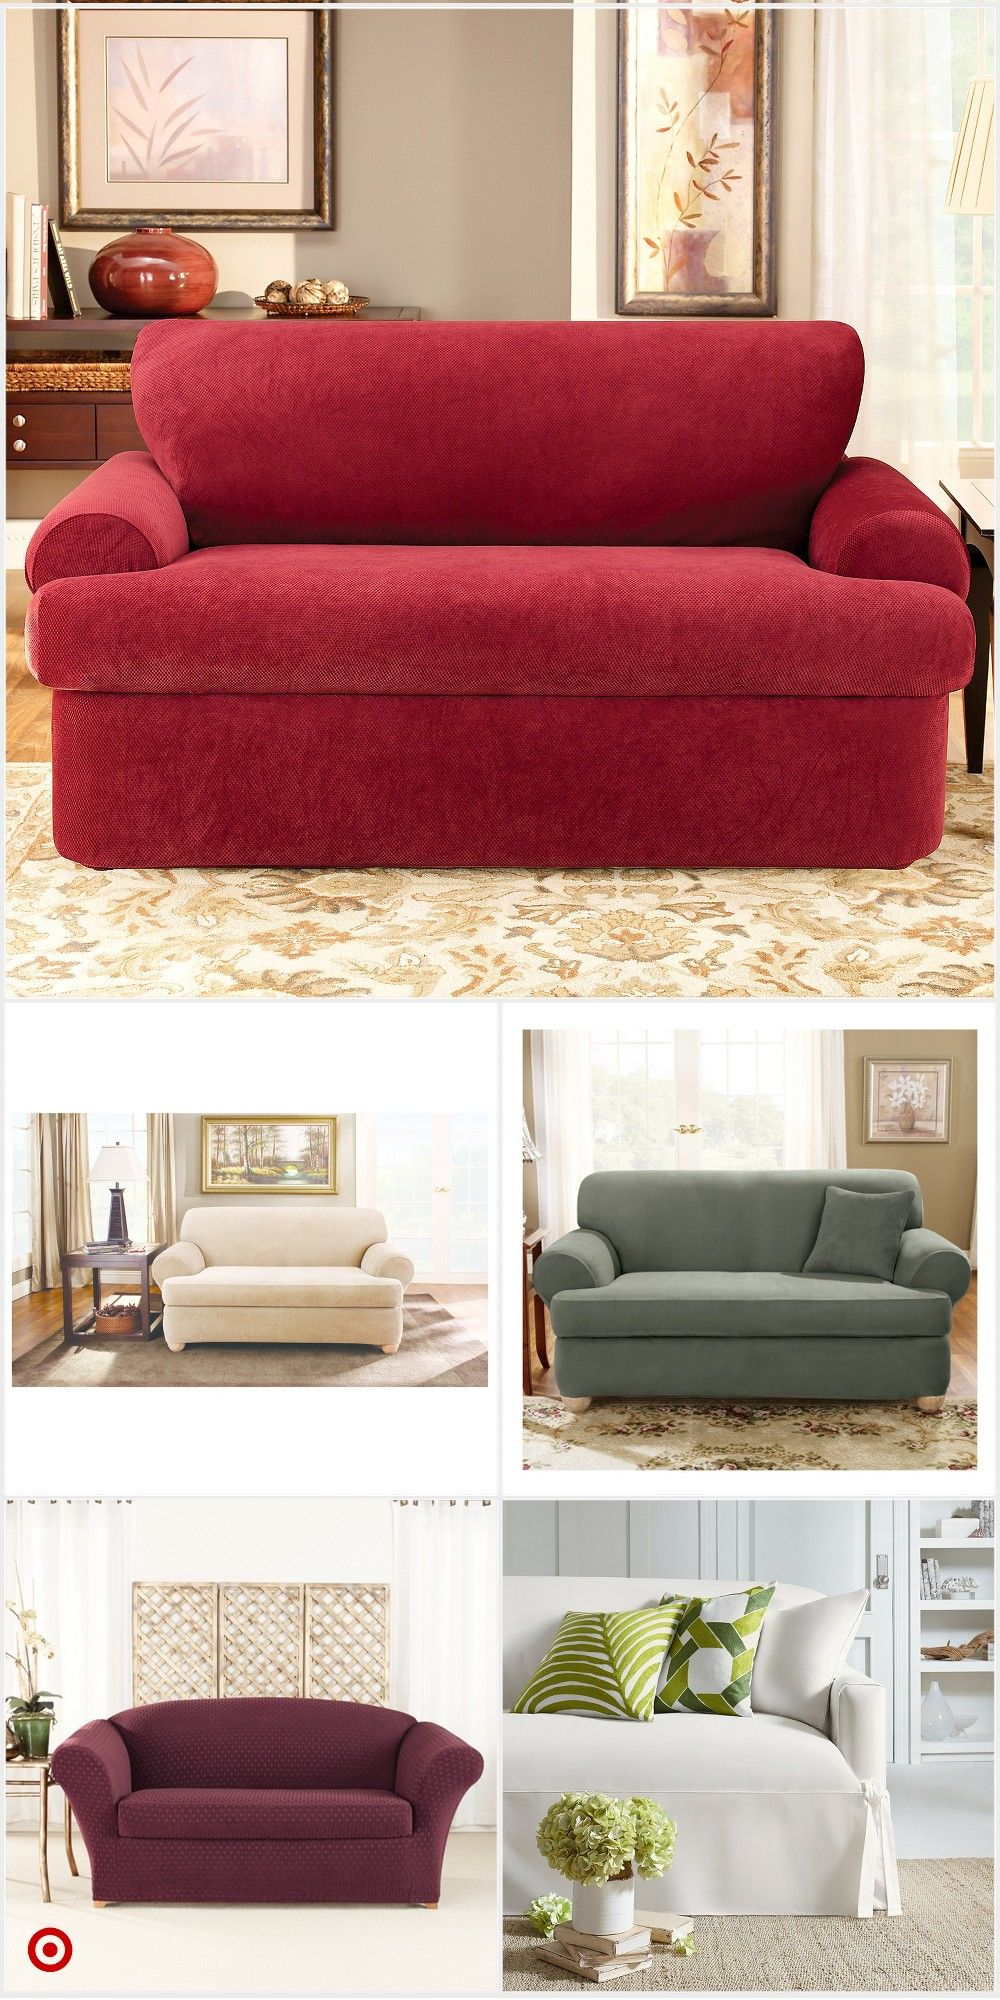 Shop Target For Loveseat Slipcover You Will Love At Great Low Prices Free Shipping On Orders Loveseat Slipcovers Living Room Decor Inspiration Diy Sofa Cover